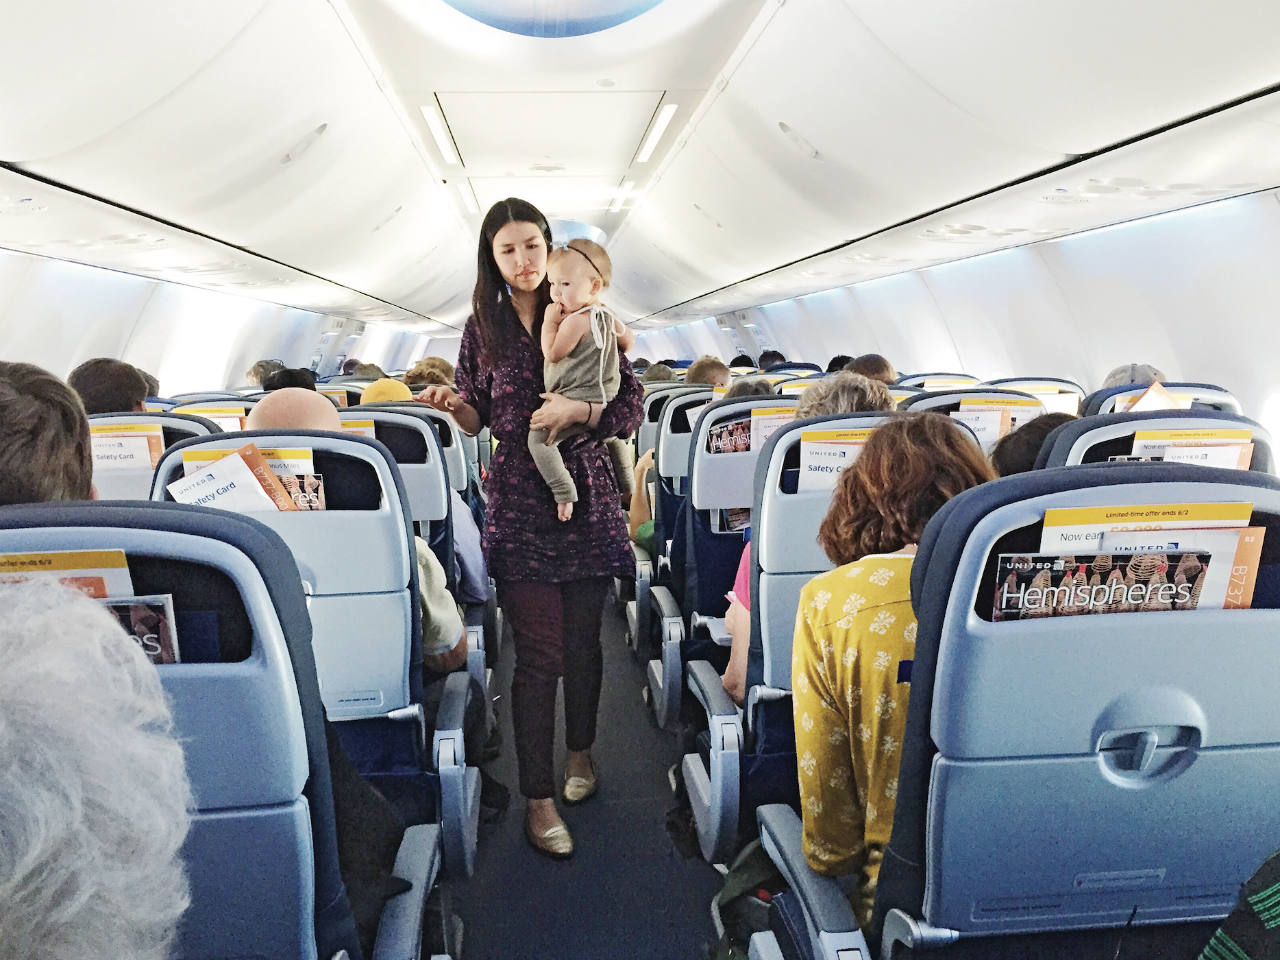 A woman with her toddler in her arms walking down a plane aisle